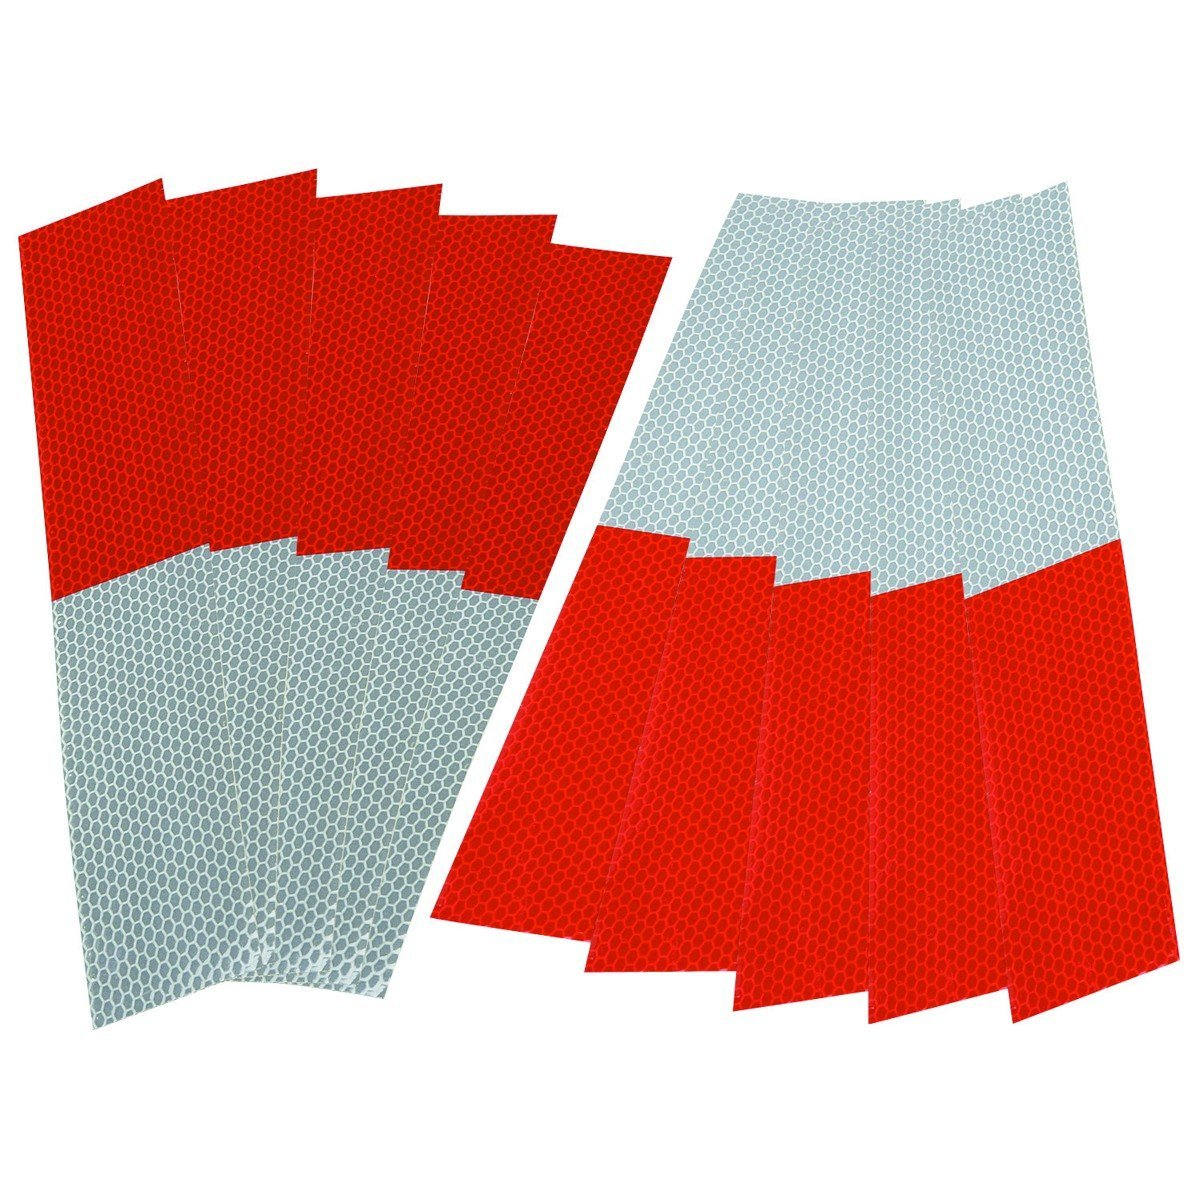 HFT 61392 Reflective Strips, Red/White, 10 Piece